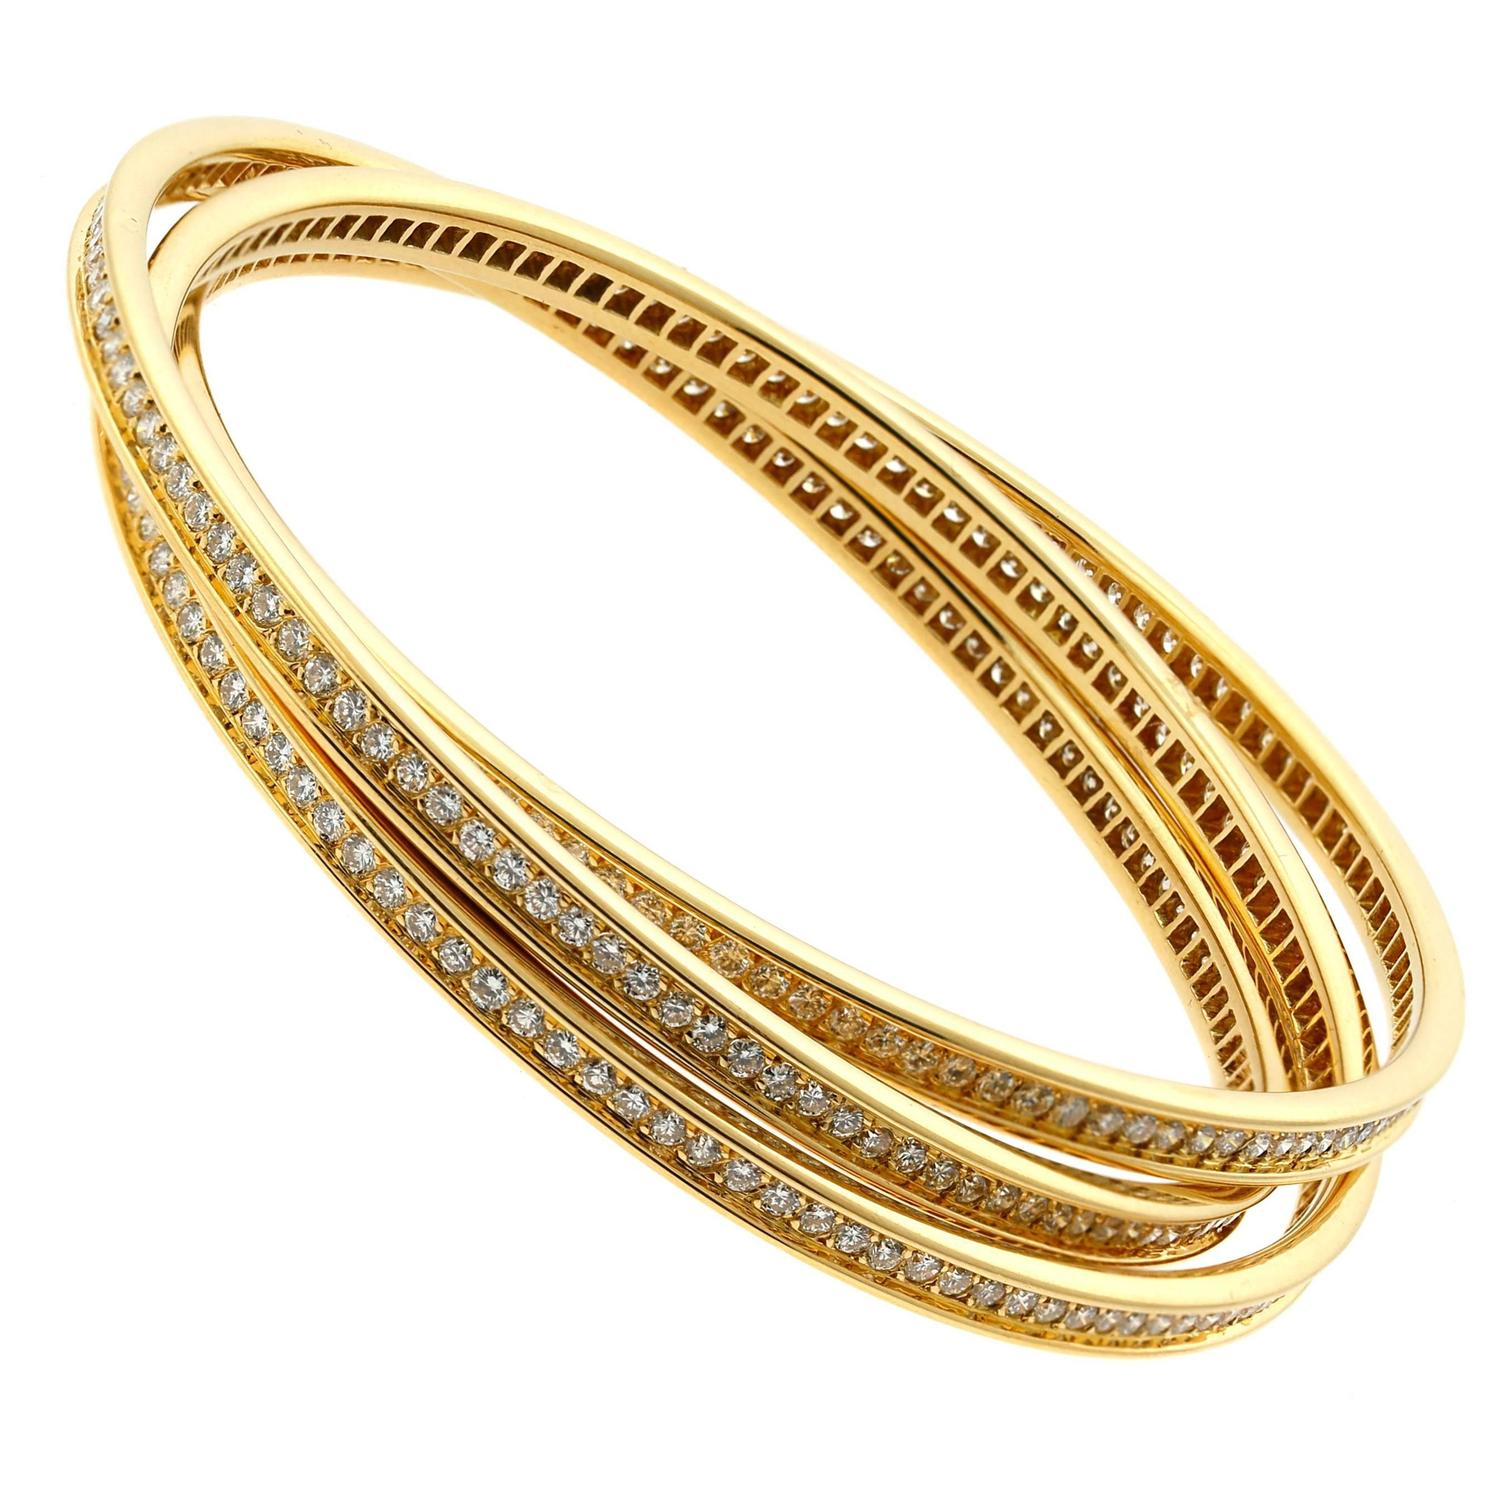 Free shipping on bracelets for women at warmongeri.ga Shop bangles, cuff bracelets, stacked bracelets, and more. Totally free shipping and returns.